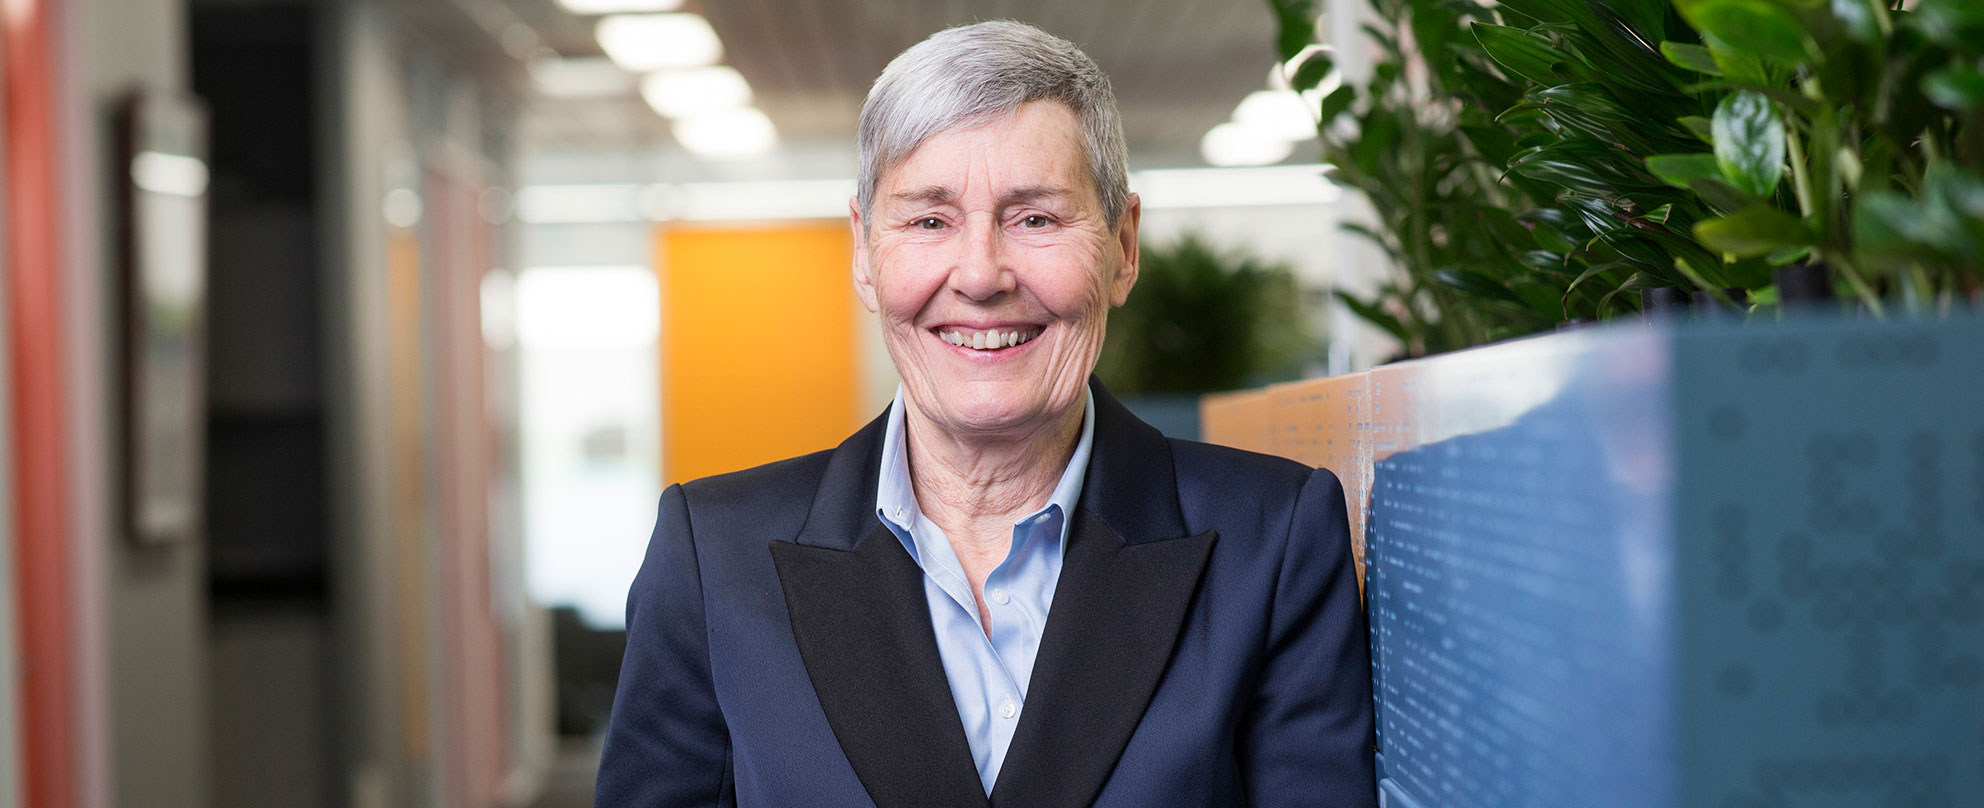 Photo of a smiling older woman with short grey hair wearing a navy blazer and pale blue shirt, brightly coloured and lit office environment in background.